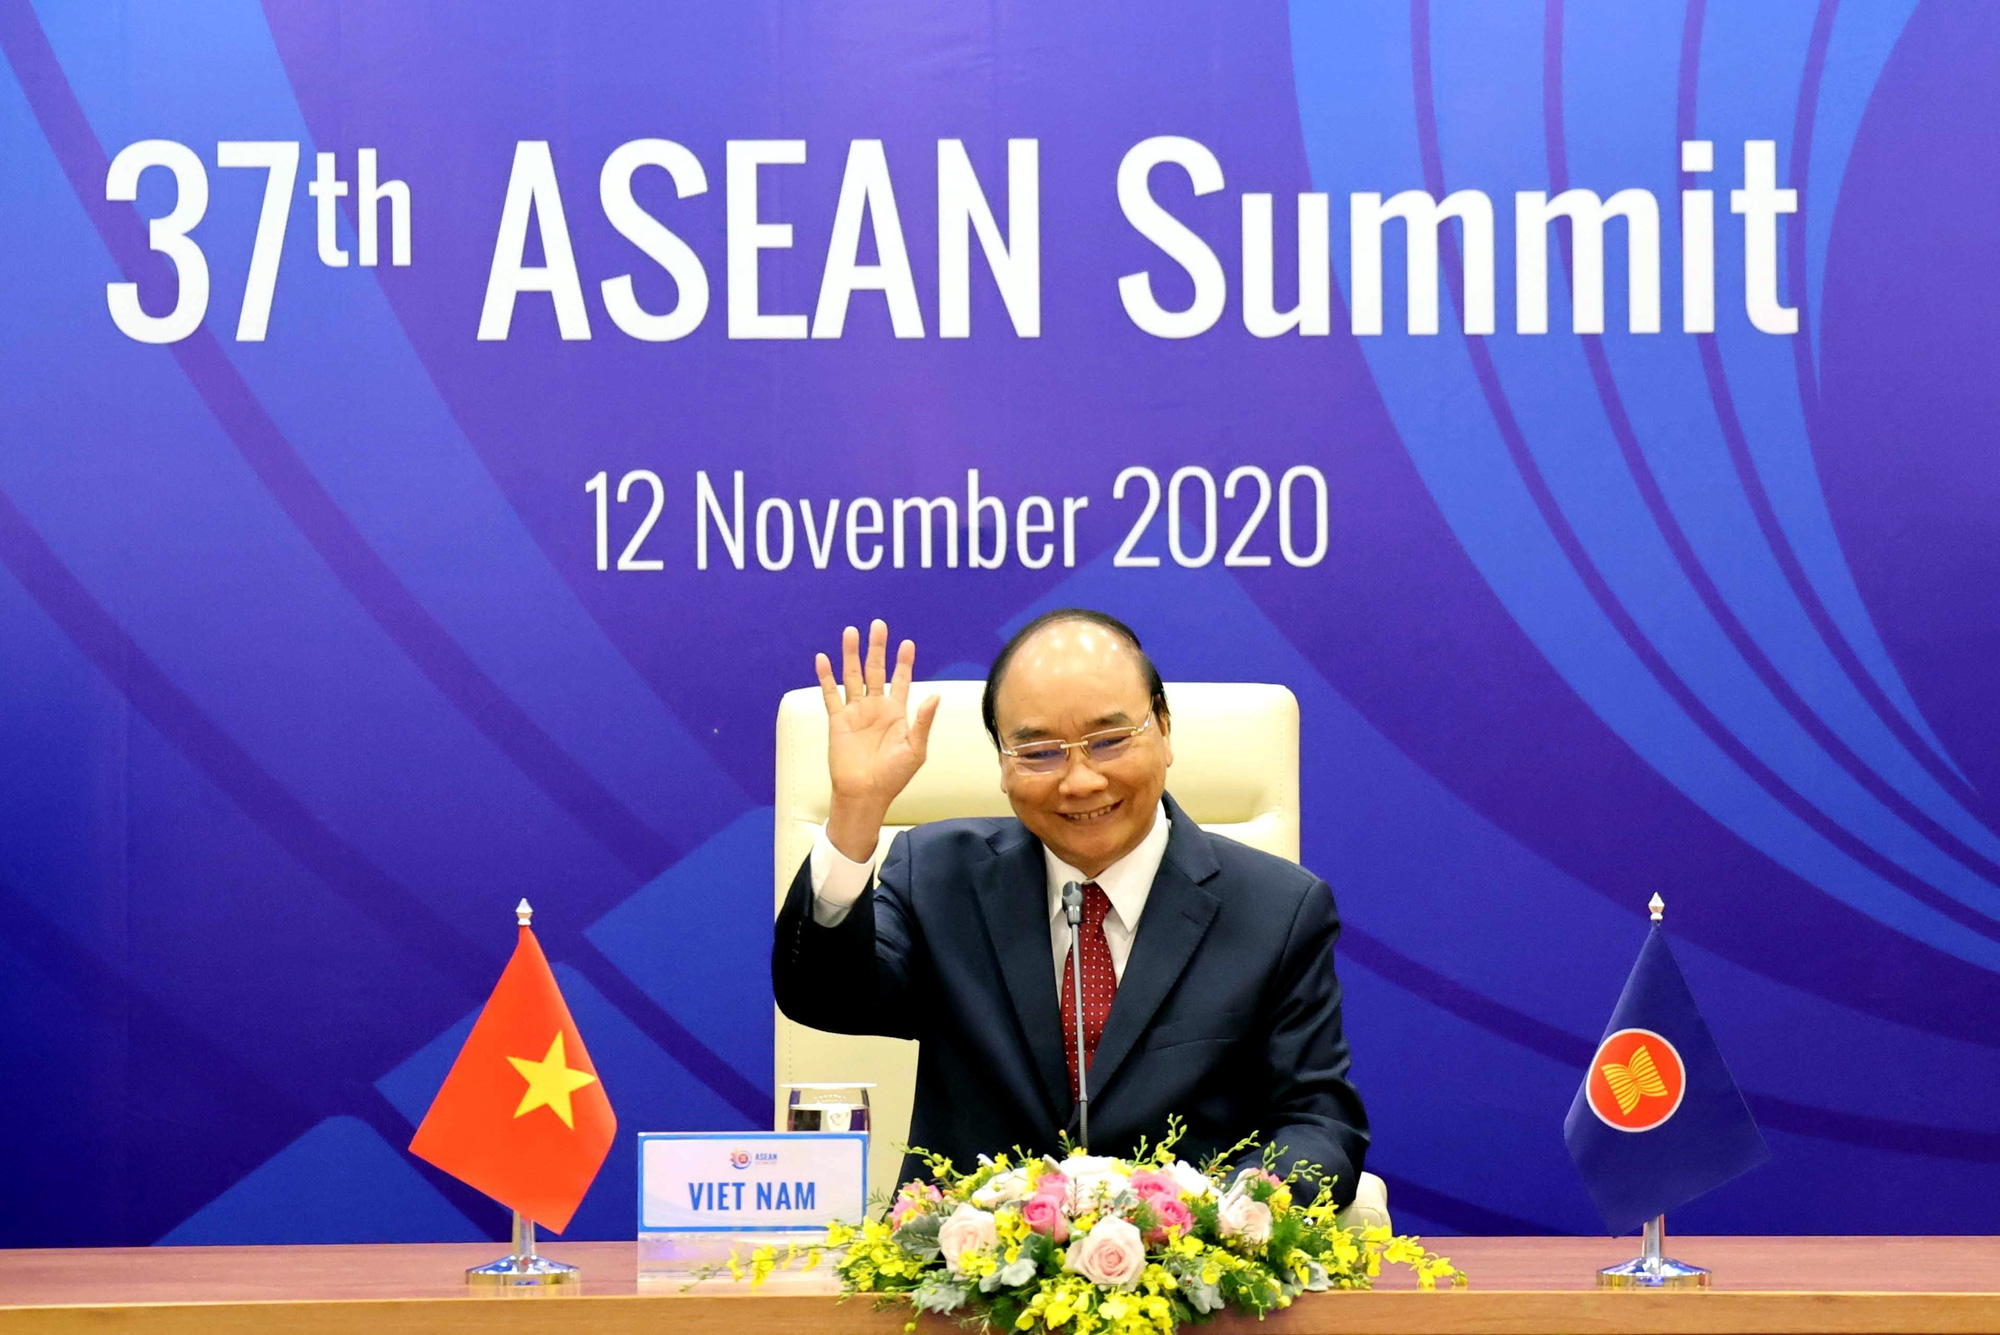 Vietnamese Prime Minister Nguyen Xuan Phuc is pictured at the 37th ASEAN Summit on November 12, 2020. Photo: Vietnam News Agency